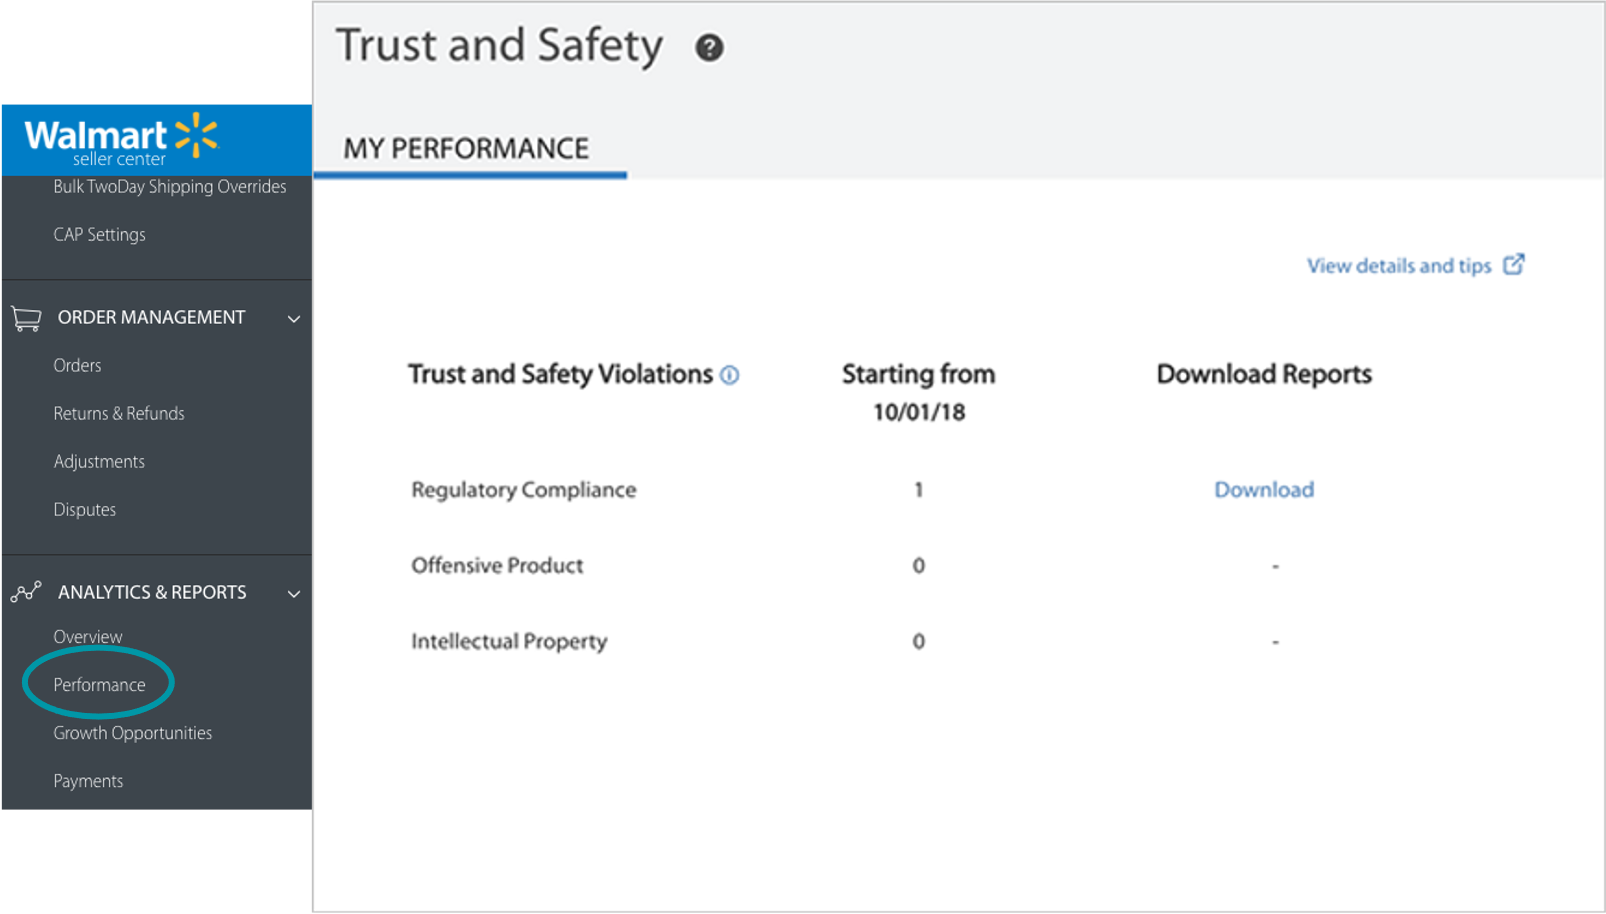 screen capture of walmart's trust and safety dashboard